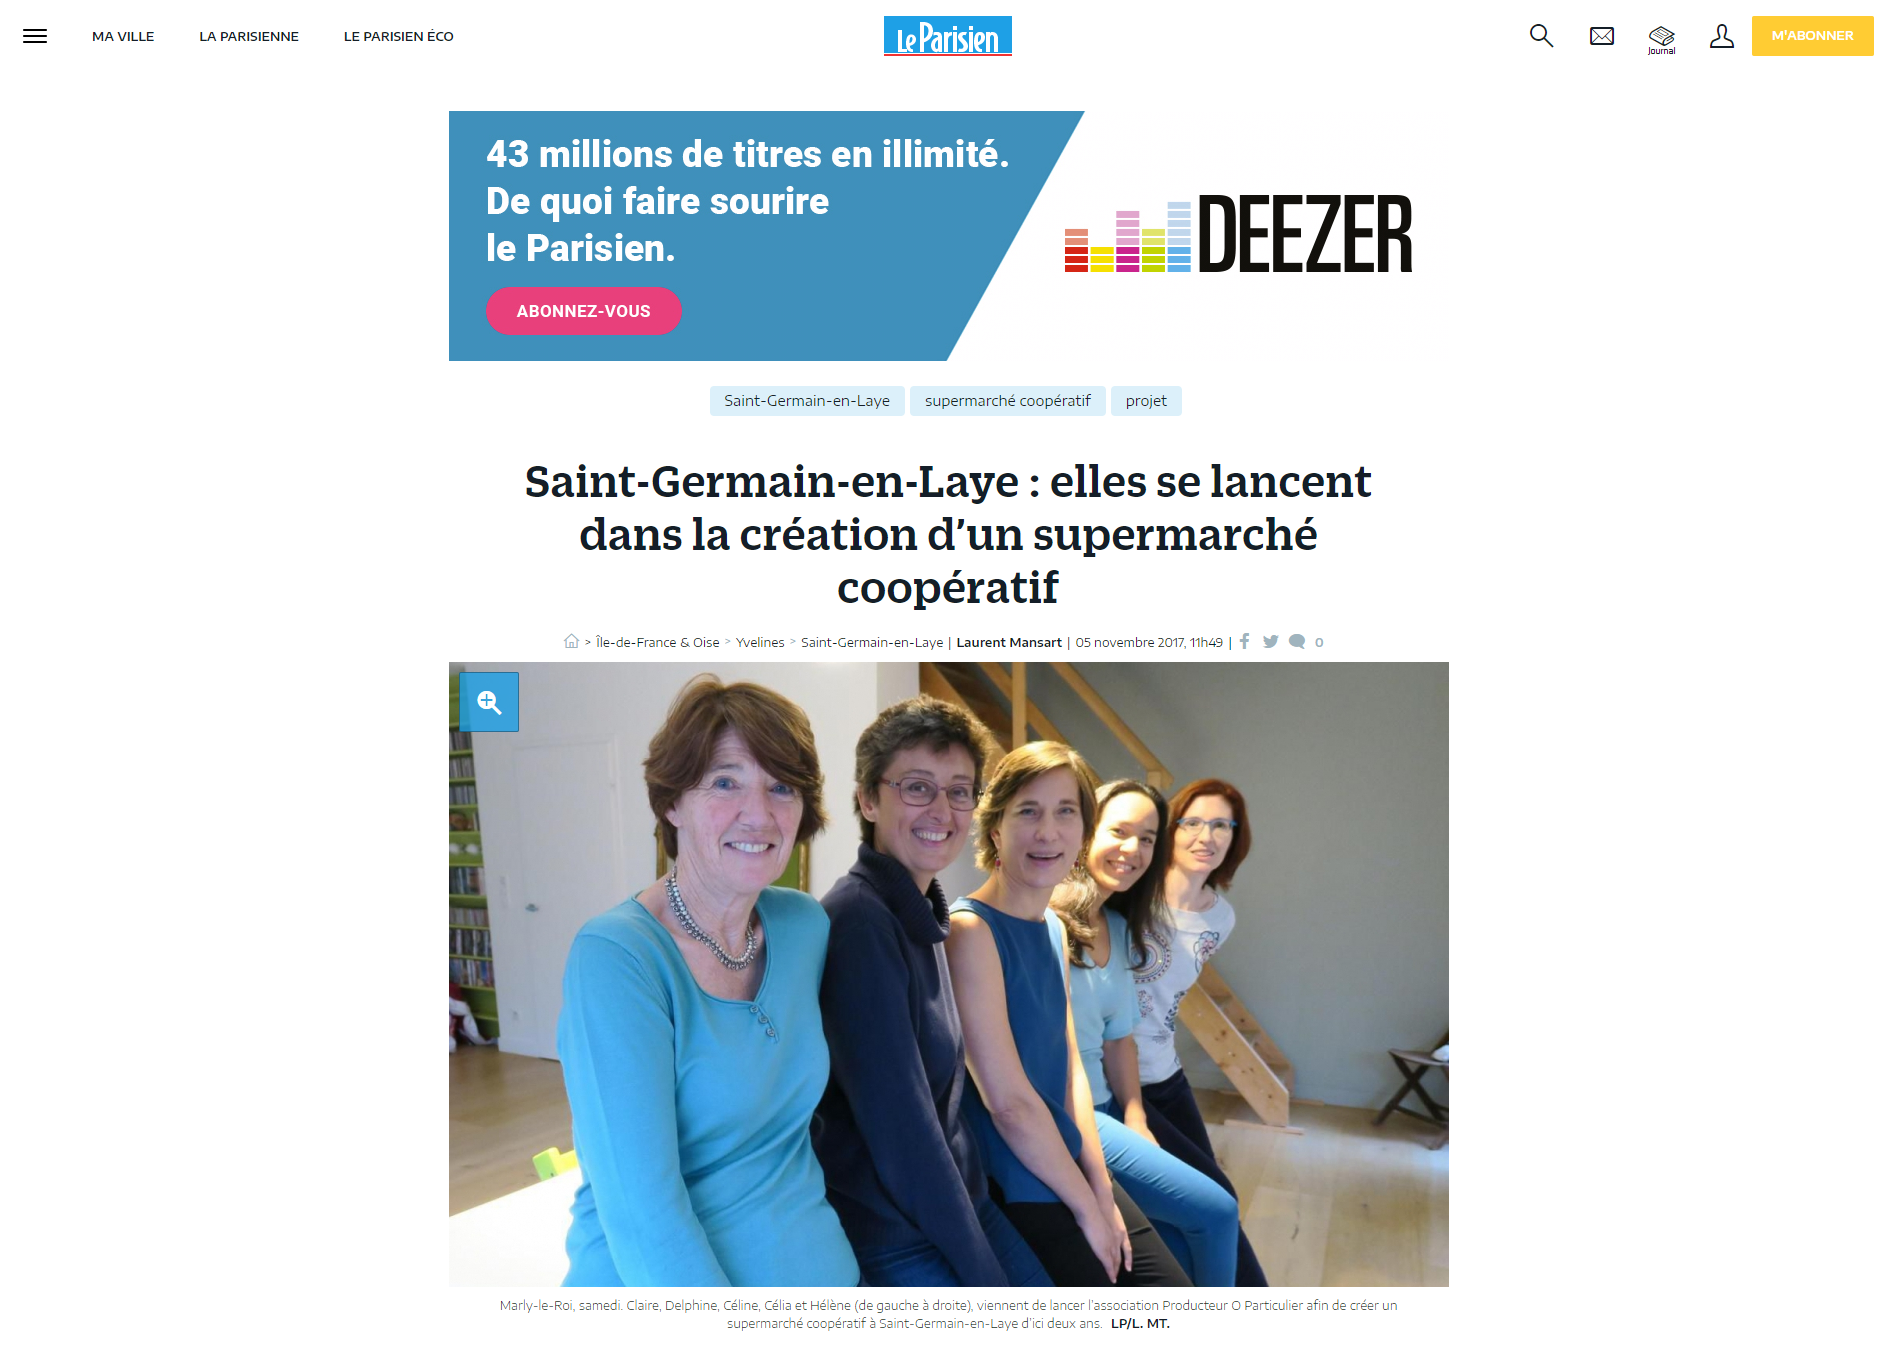 Article Texte + image